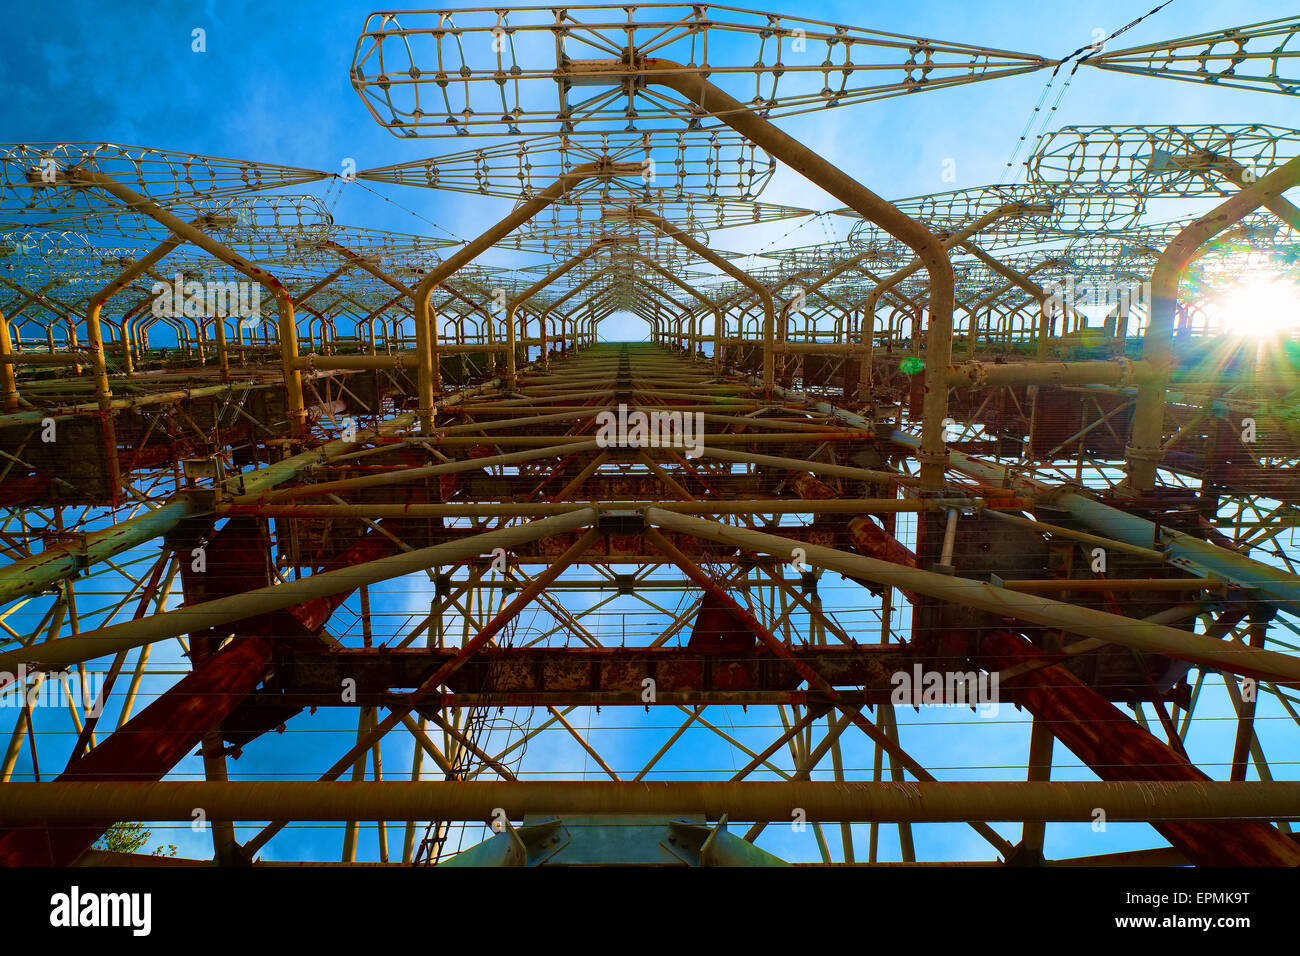 Russian Woodpecker Chernobyl Ukraine - Stock Image